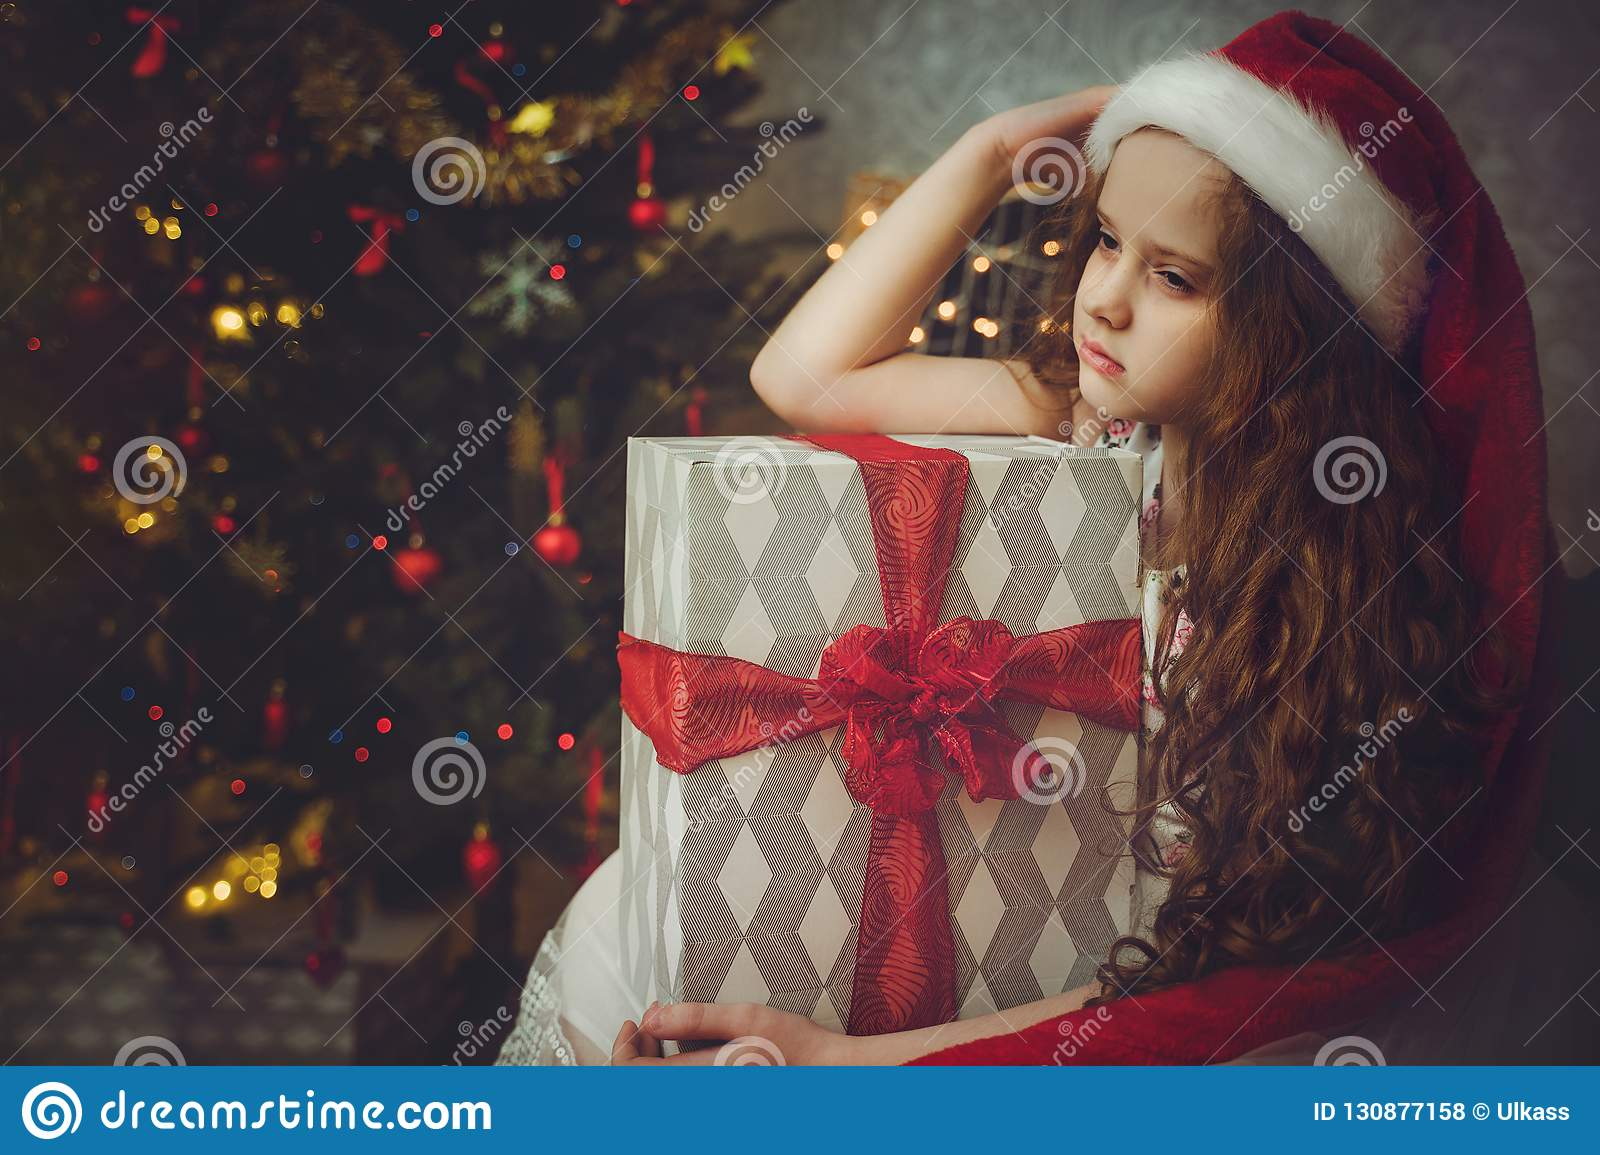 Sad Little Girl In Santa Hat. Stock Photo - Image of holiday, person: 130877158